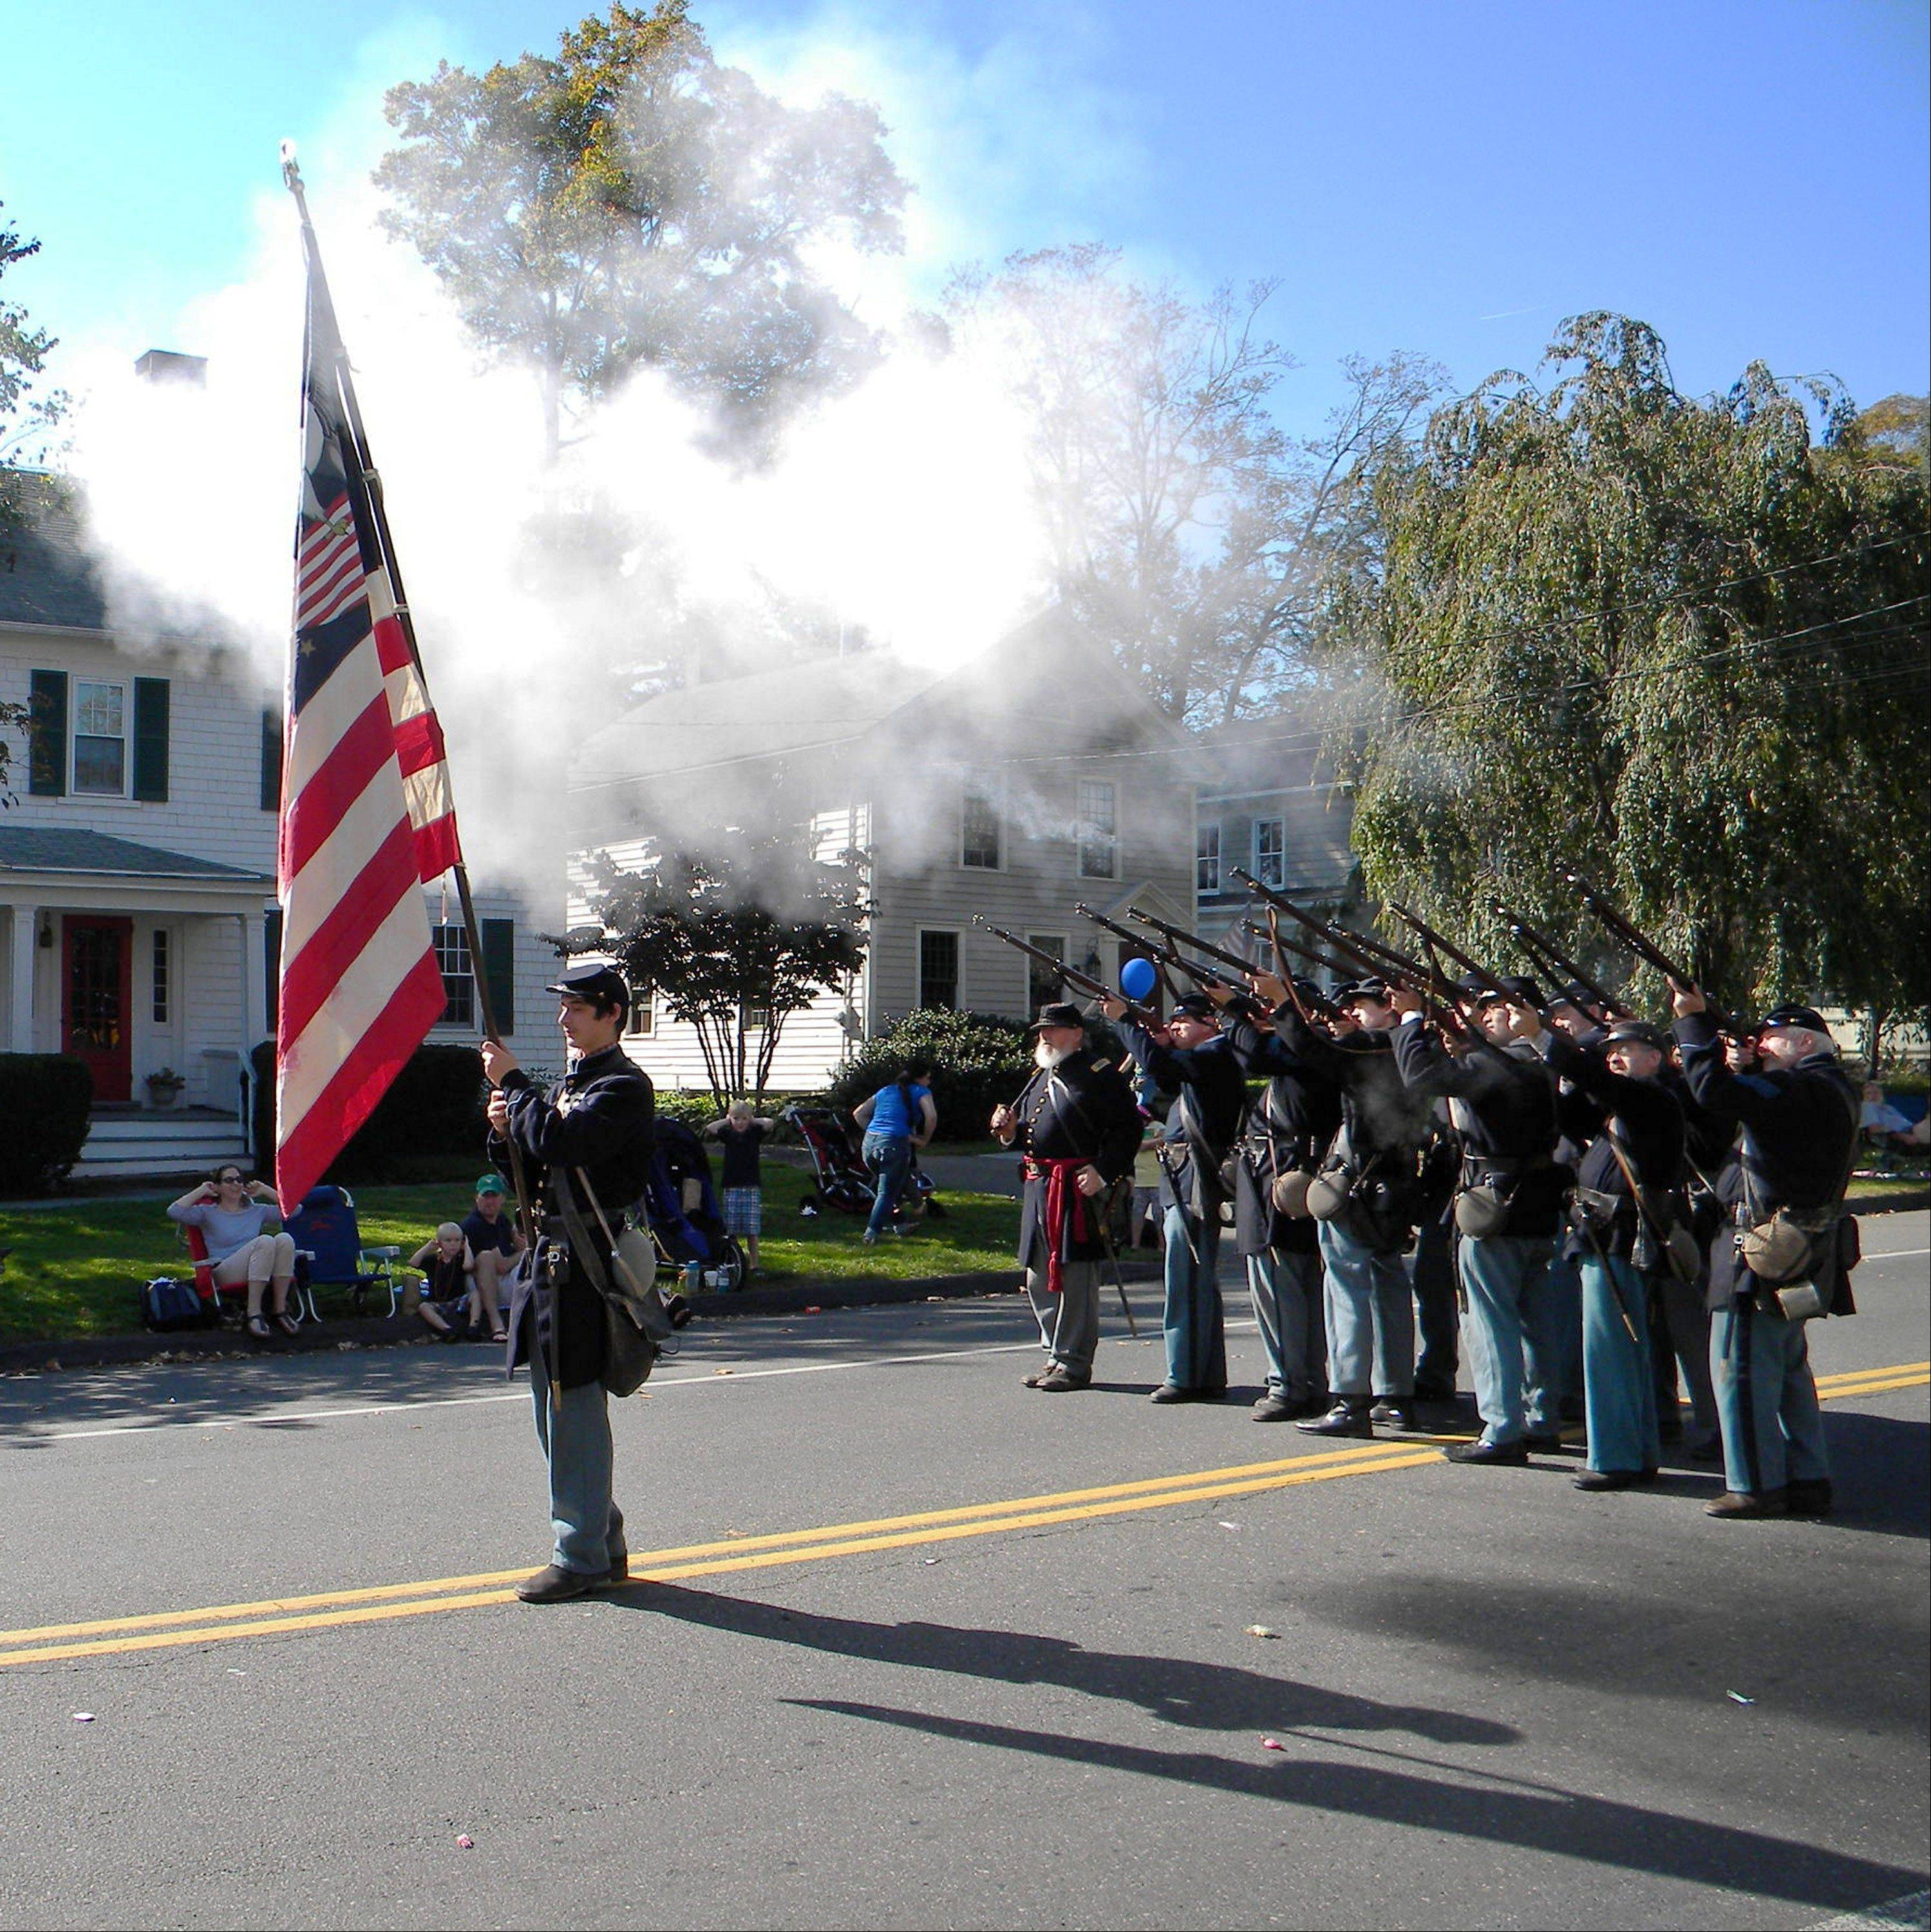 Civil War re-enactors fire a salute as spectators cover their ears during the Labor Day parade in Newtown, Conn. The 11th Connecticut Volunteer Infantry, Company A will march again in the town�s annual parade, but with black armbands and rifles pointed downward, a gesture of mourning, according to a father of a member of the unit. �They had decided independently that they shouldn�t be firing,� Dan Cruson said, nearly nine months after shootings at Sandy Hook Elementary School left 26 dead, 20 of them children.